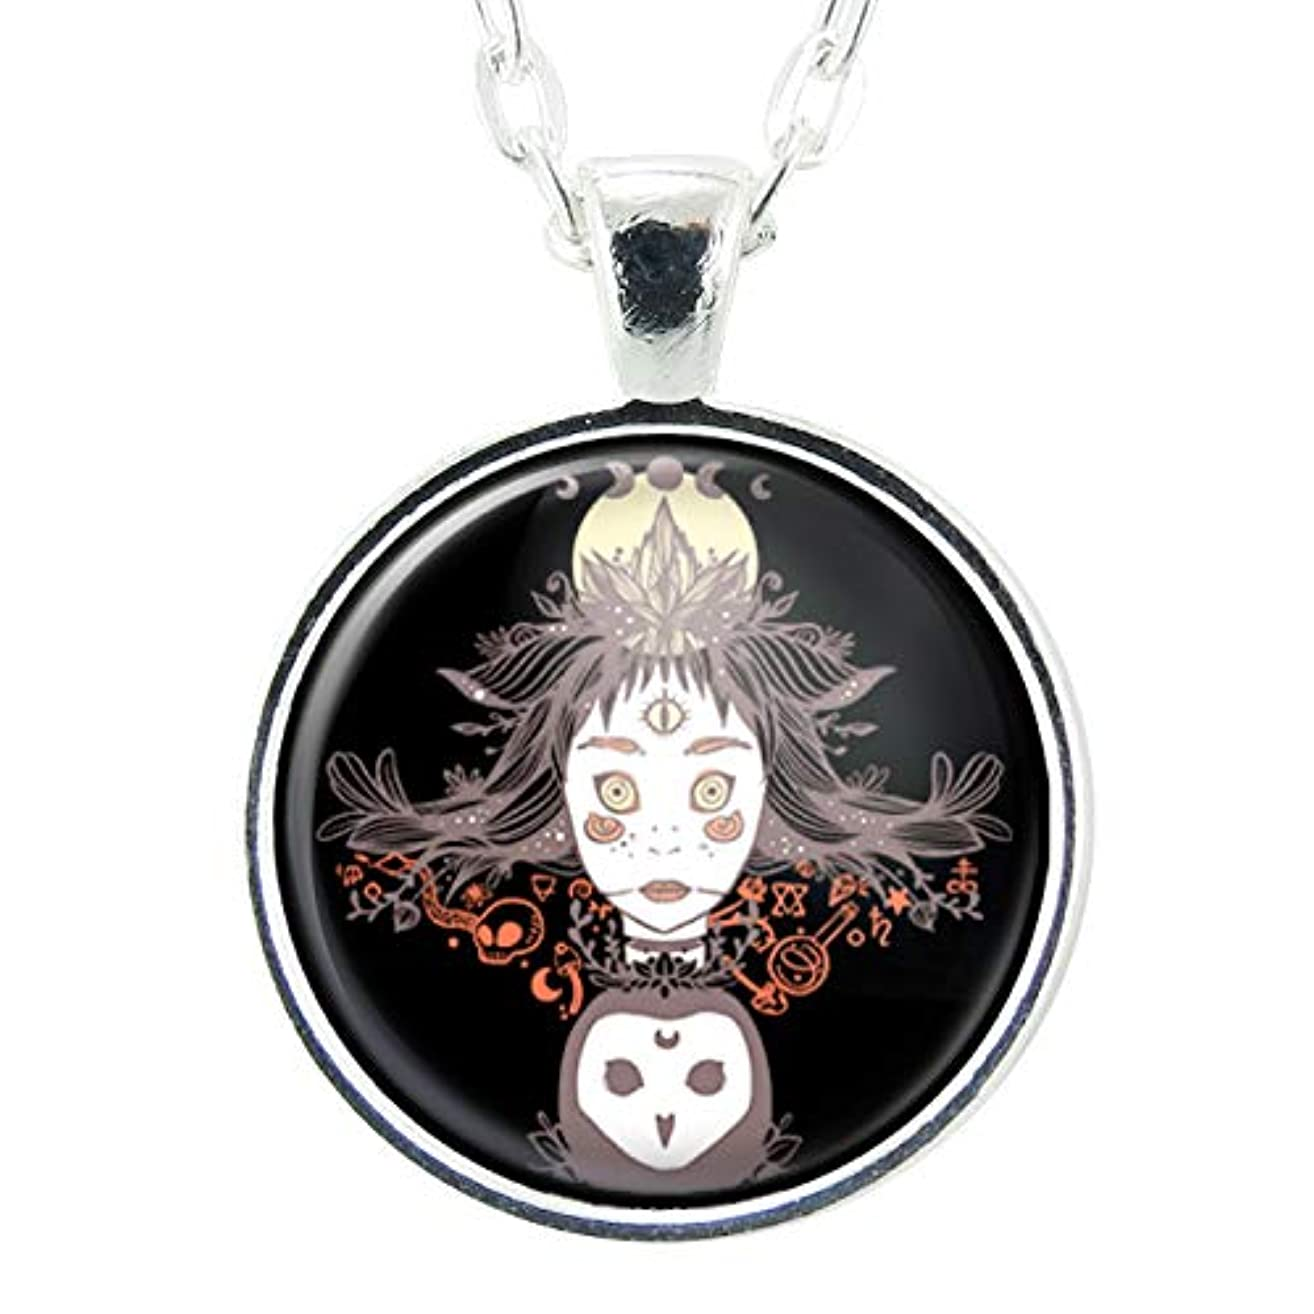 Witch And Owl Artwork, Handmade Art Pendant, Black 1 Inch Charm On 24 Inch Necklace Chain